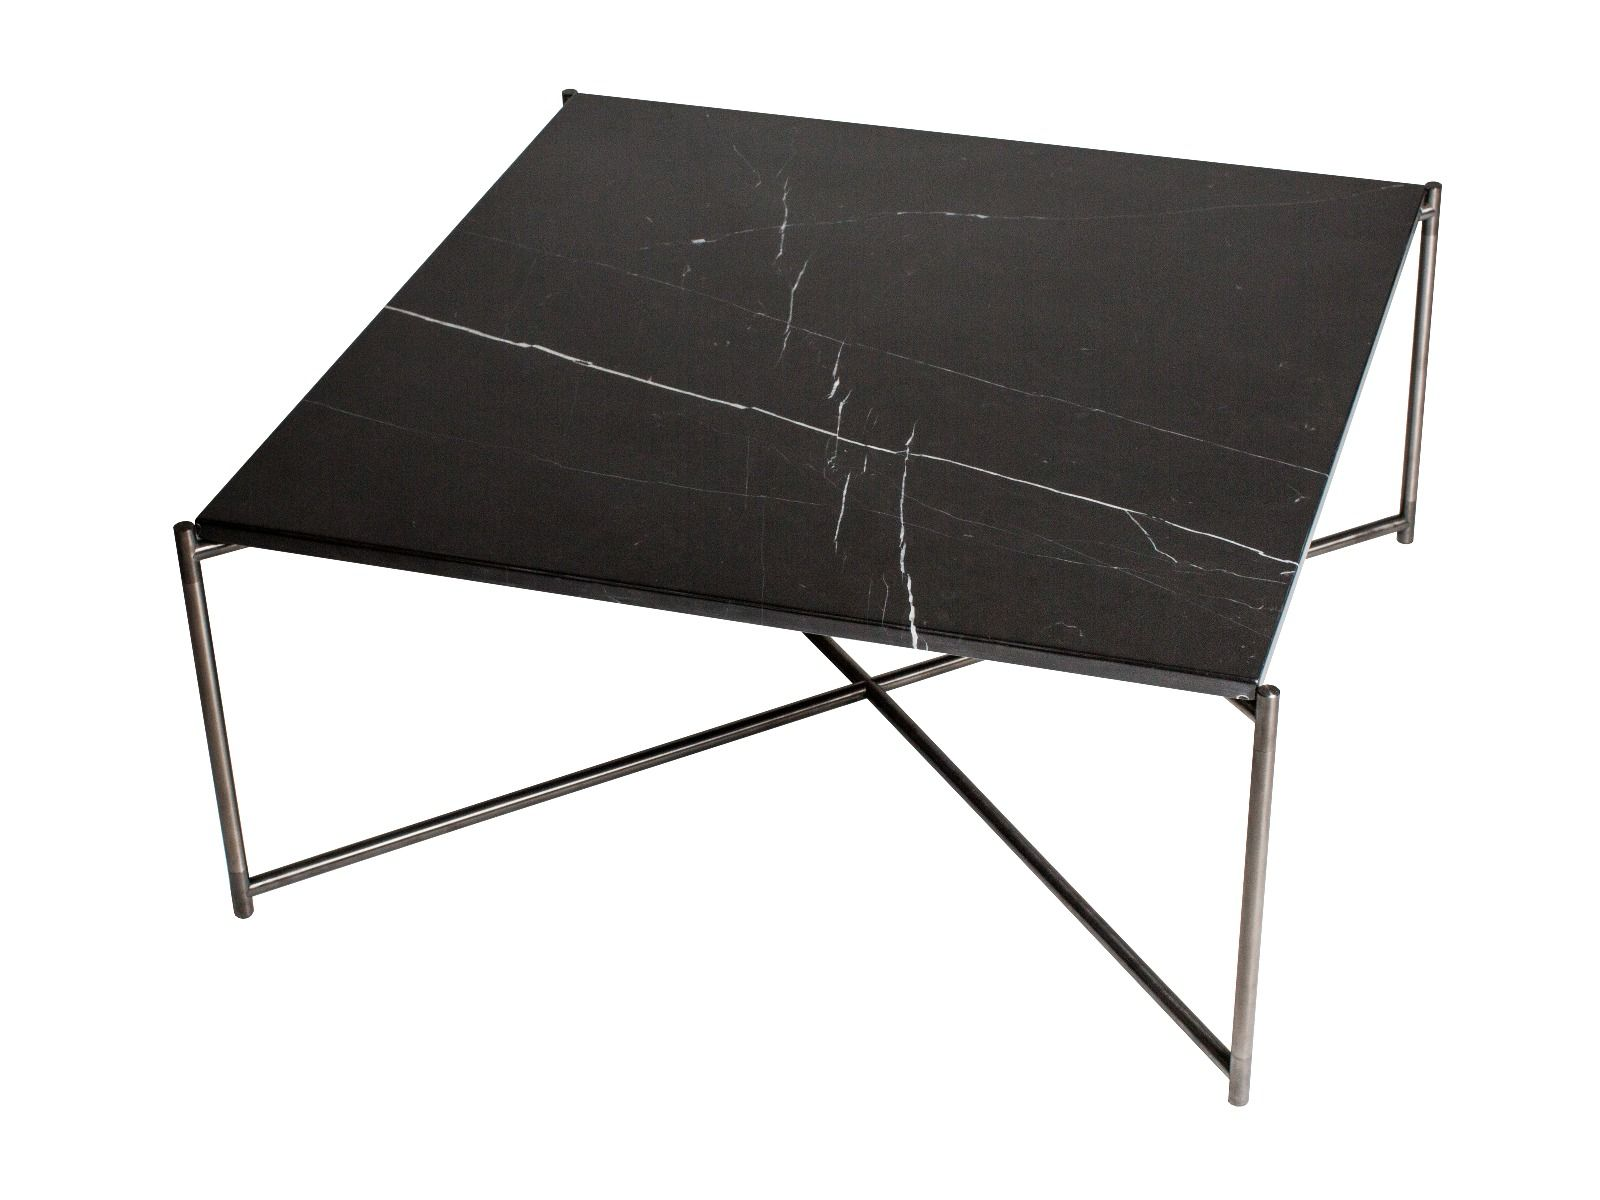 Square Coffee Table Collection From Gillmore